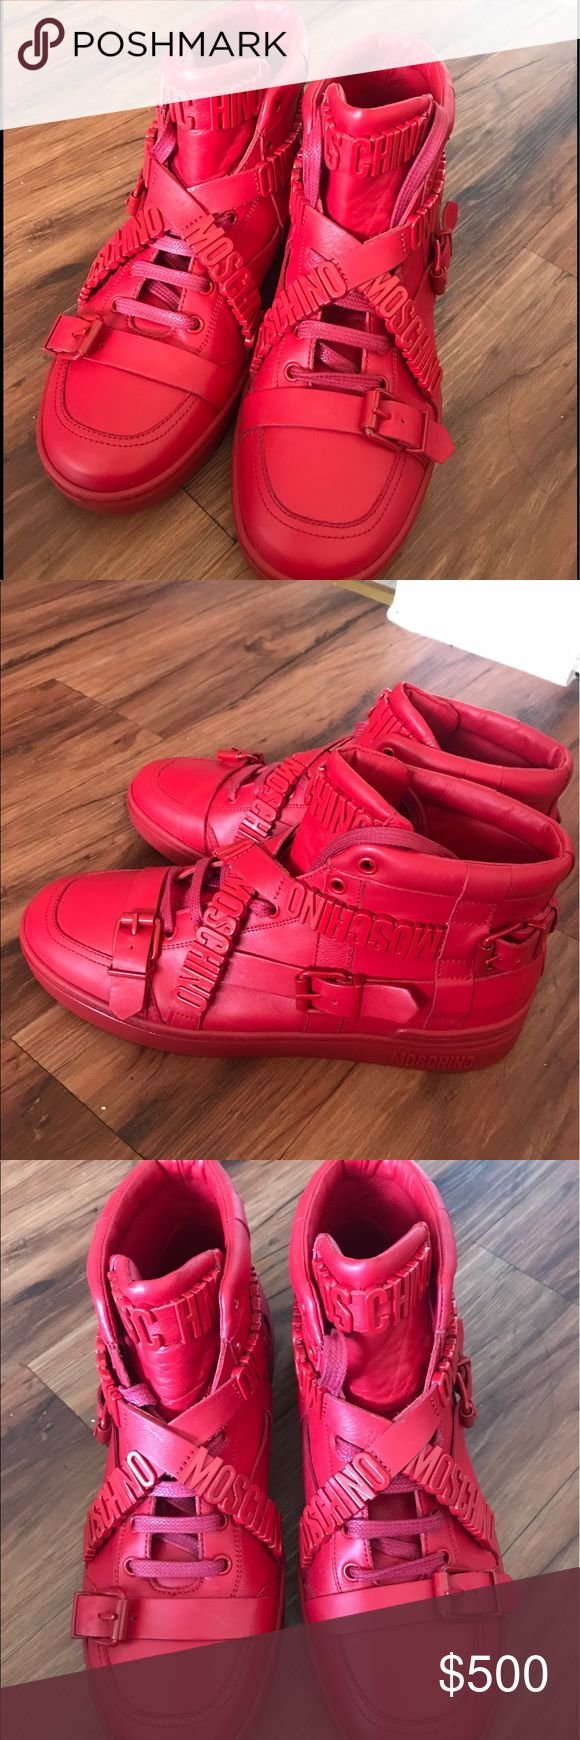 Moschino Red Designer  Sneakers Moschino Sneakers Size 9 MEN (42) have been worn twice. No damaging look like new. They DO NOT come with original box but I will provide one. Willing to negotiate price. Moschino Shoes Sneakers